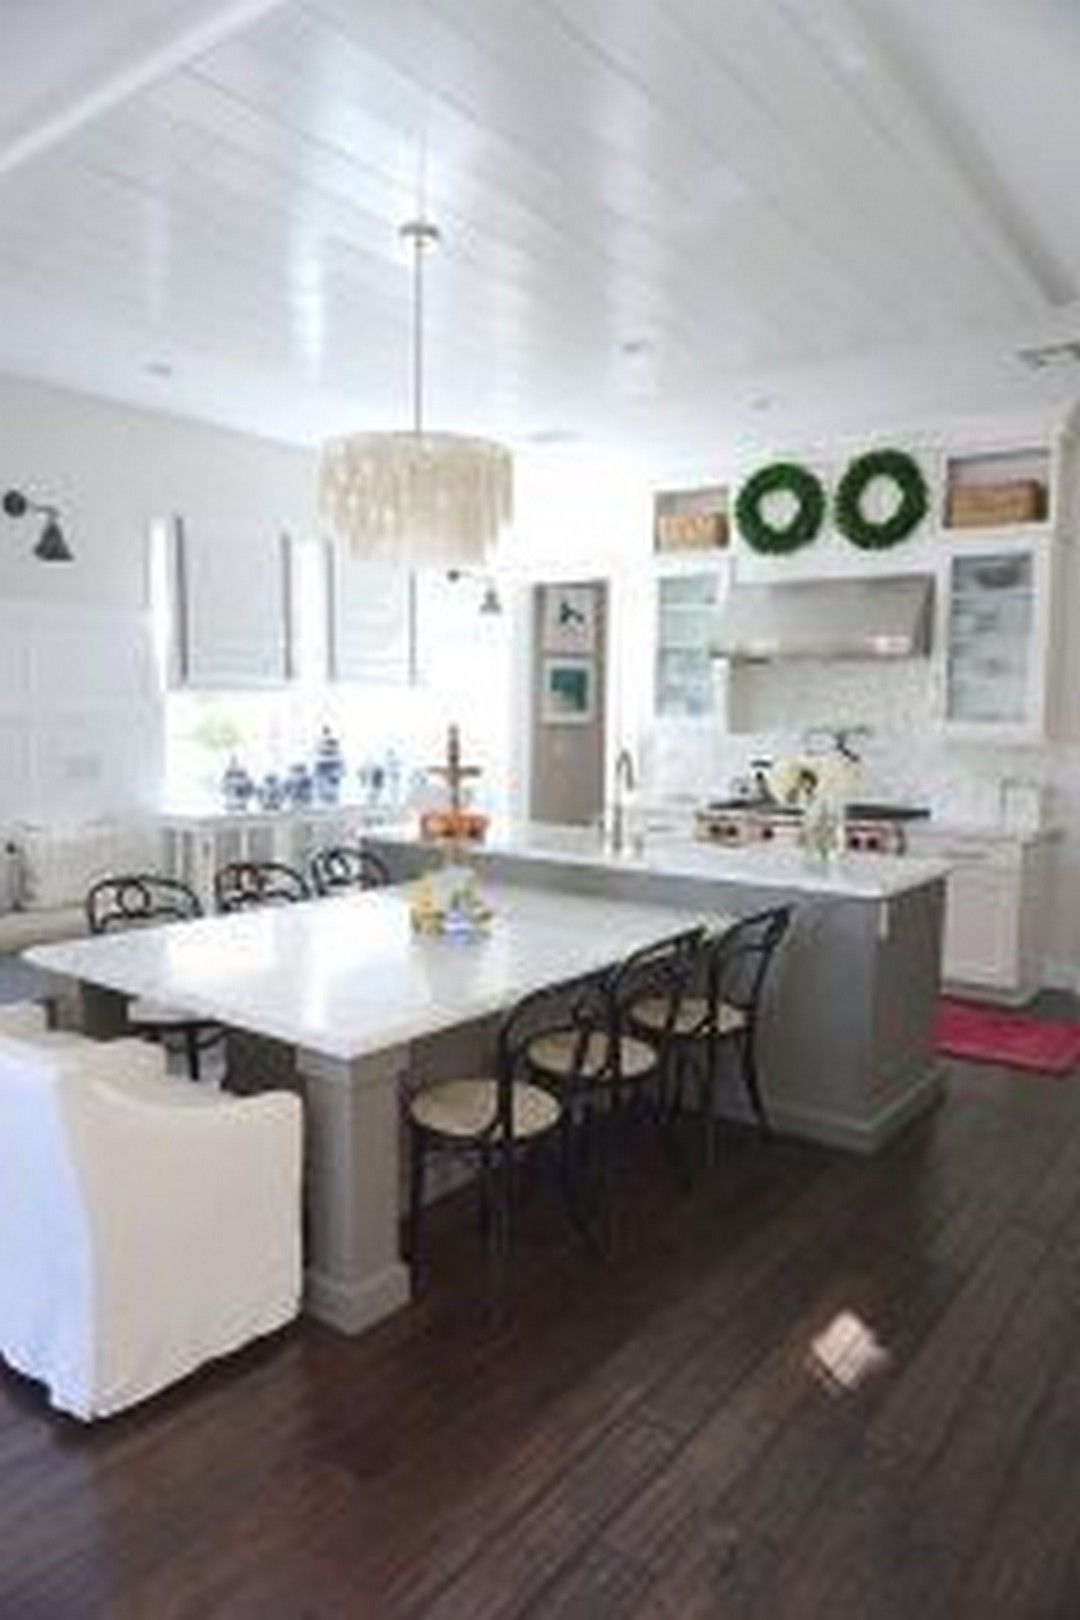 42 Great Ideas Kitchen Island With Built In Seating Inspiration